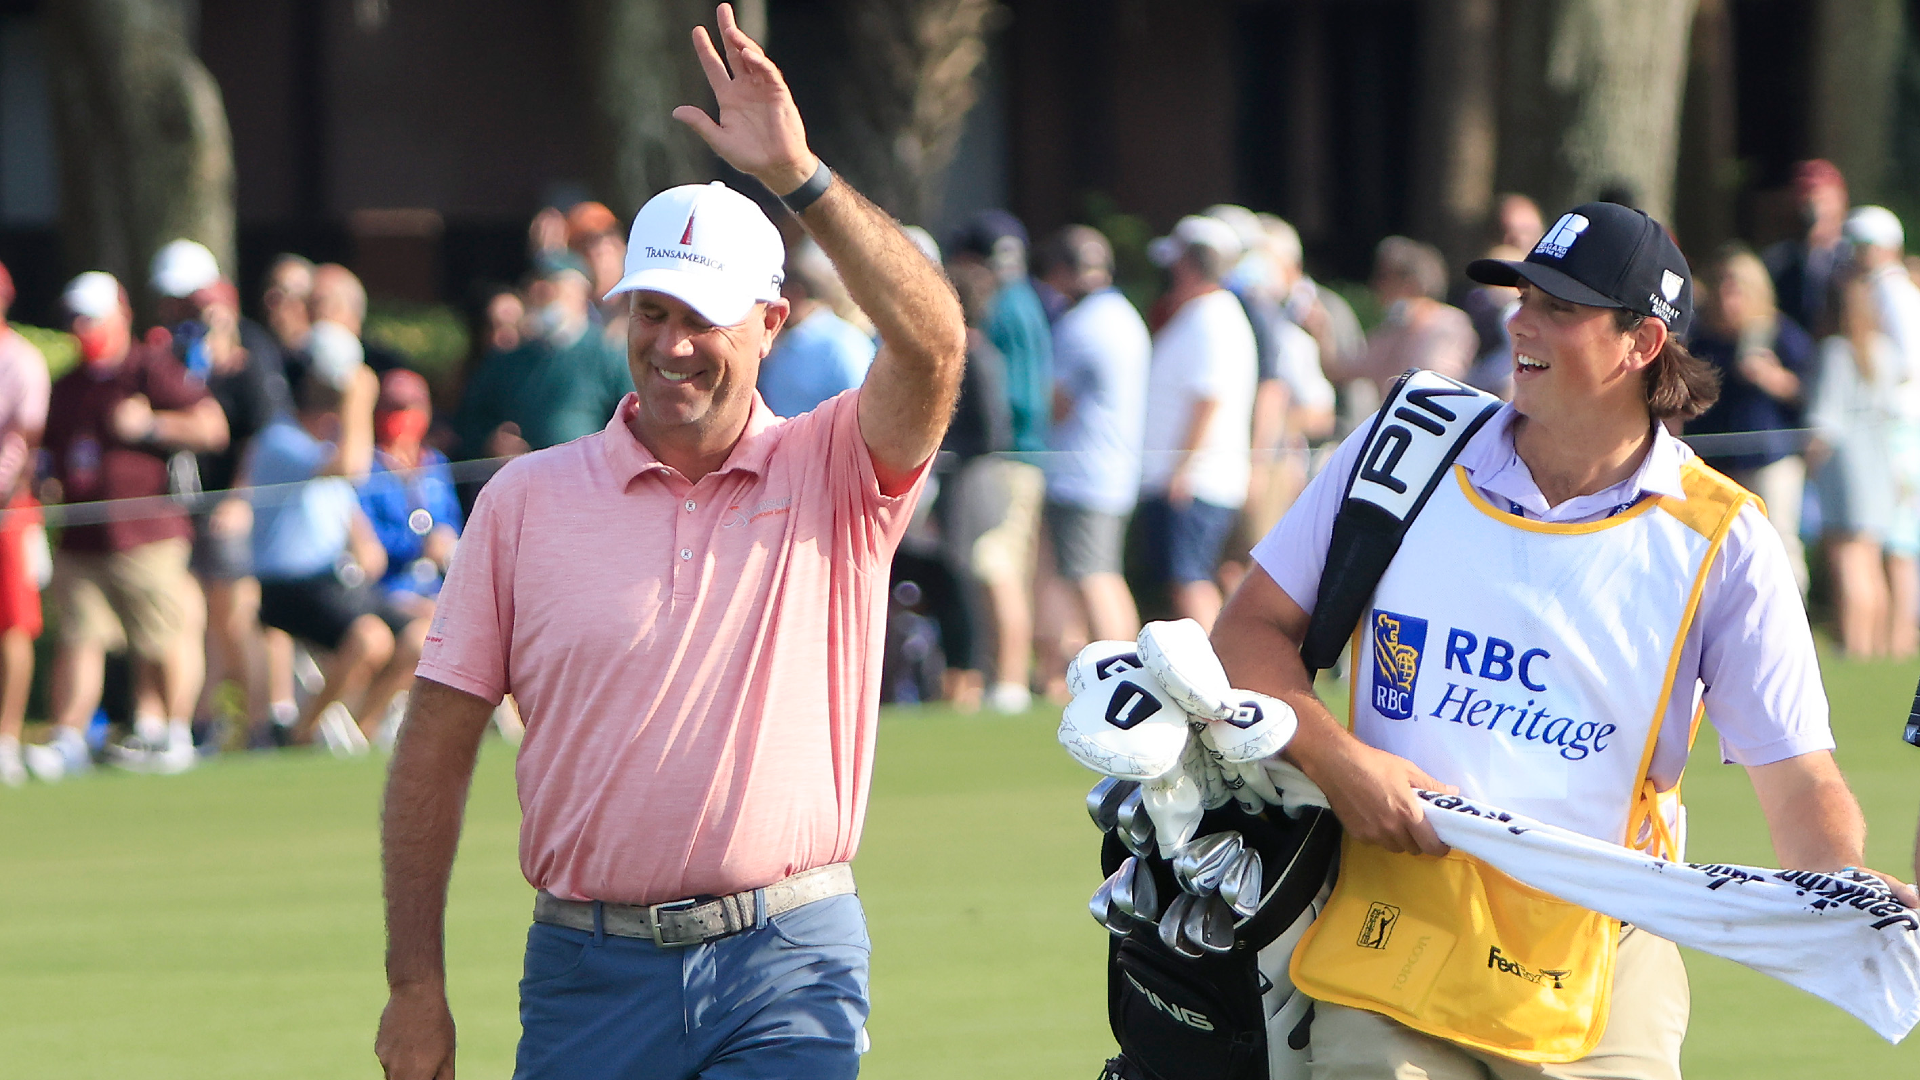 Cink maintains five-shot lead as he breaks another RBC Heritage record